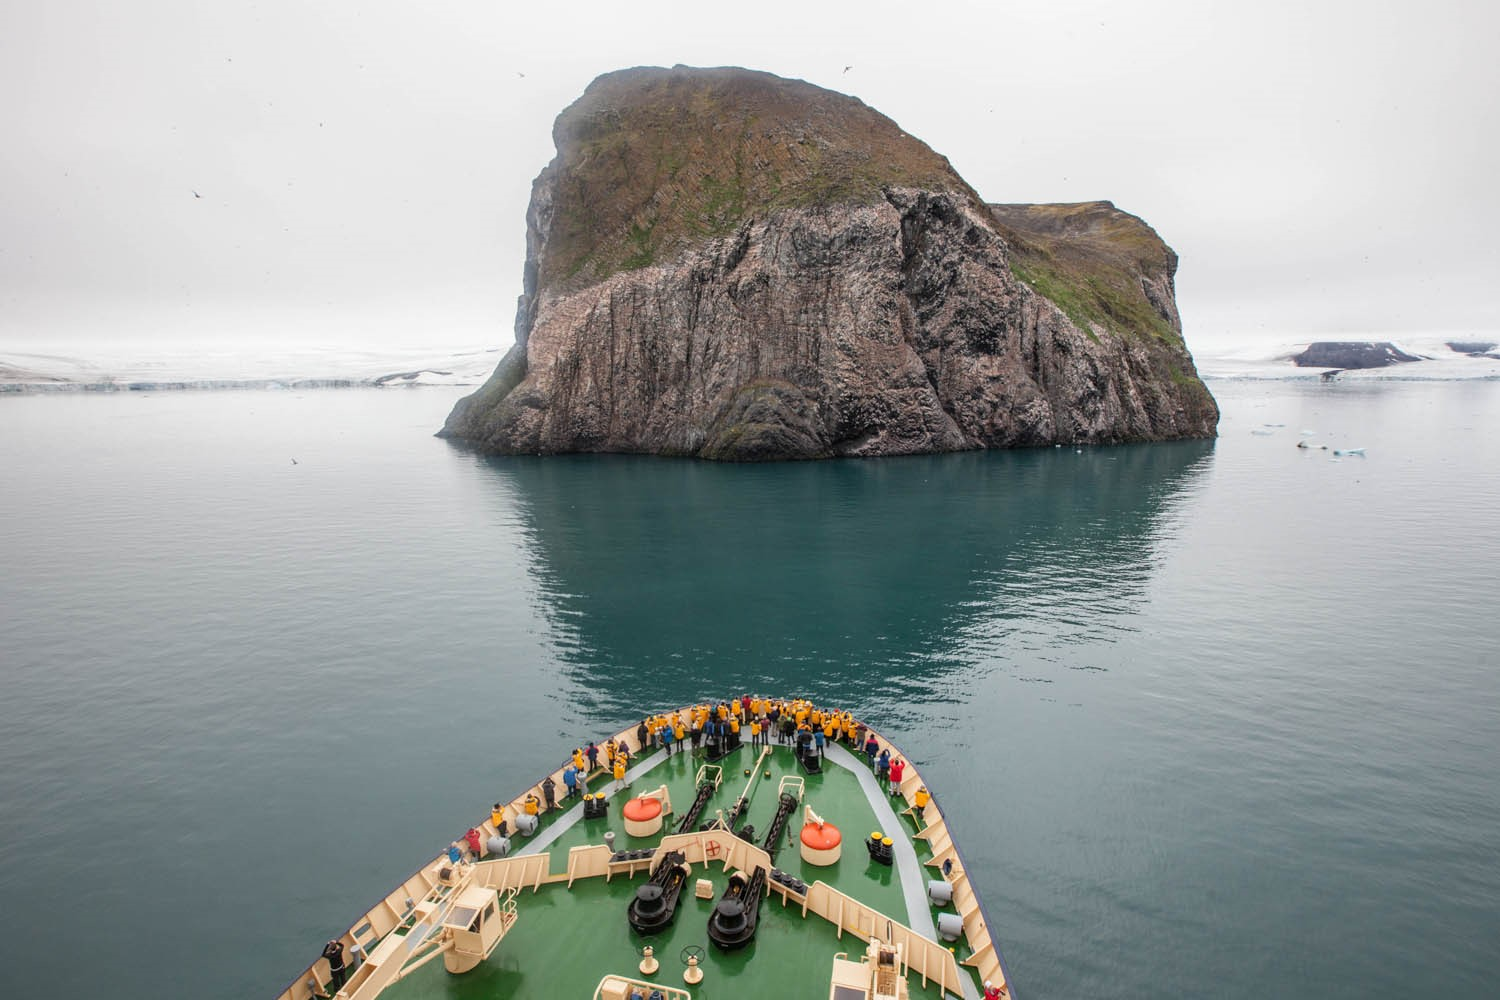 Guests traveling with Quark Expeditions guests on the deck of the ship on a voyage through the remote regions of the Russian Arctic, Franz Josef Land.